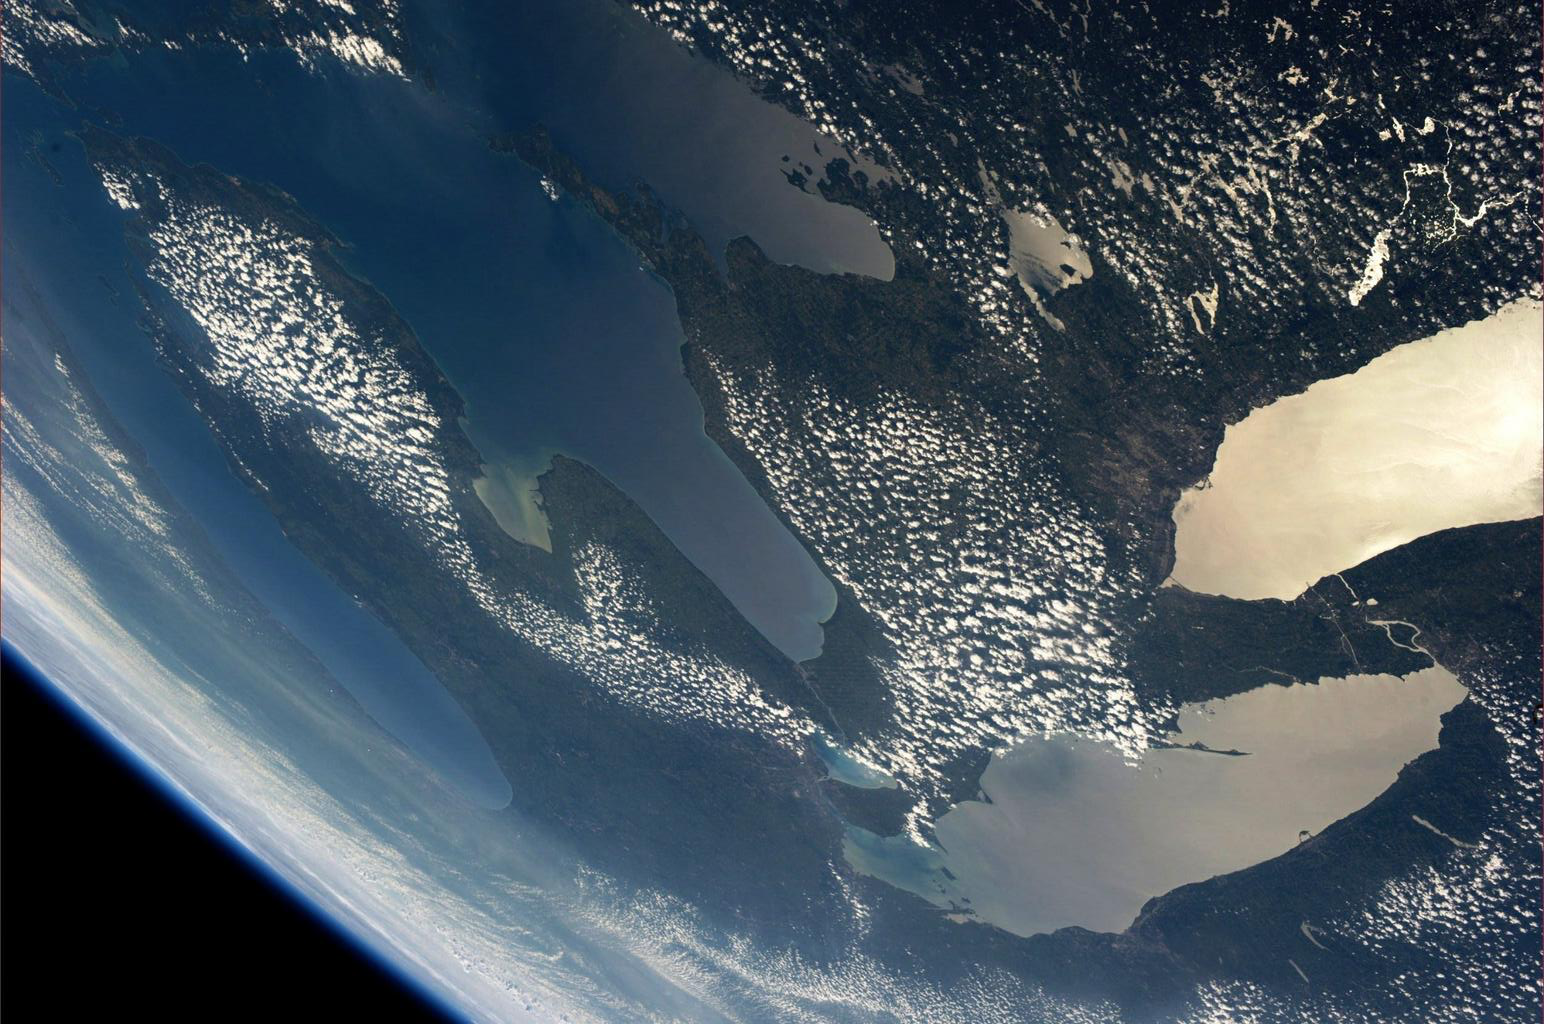 The Great Lakes, as viewed by American astronaut Karen L. Nyberg from the International Space Station, 2013. Lake Ontario is the body of water in the upper right. It connects to Lake Erie, below, via the Niagara River.